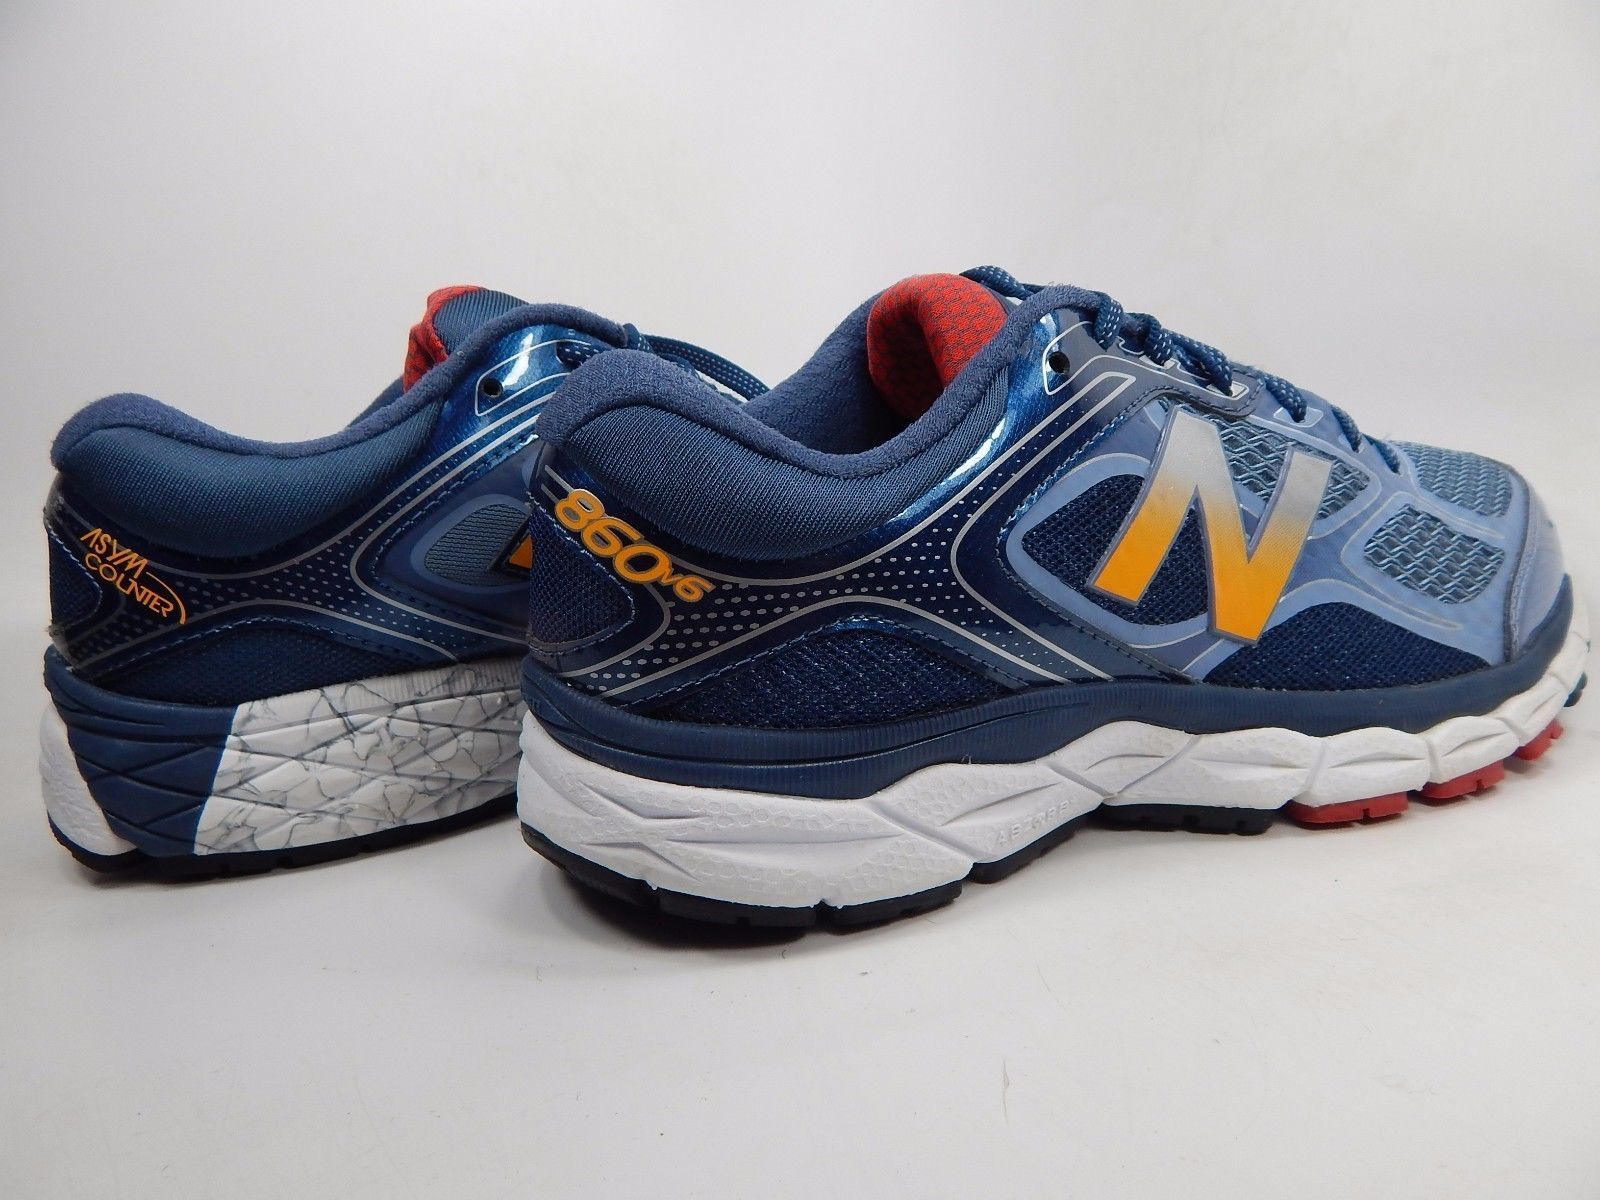 New Running Men's Size Similar 18 860 V6 Balance And Shoes Items rnqpHr